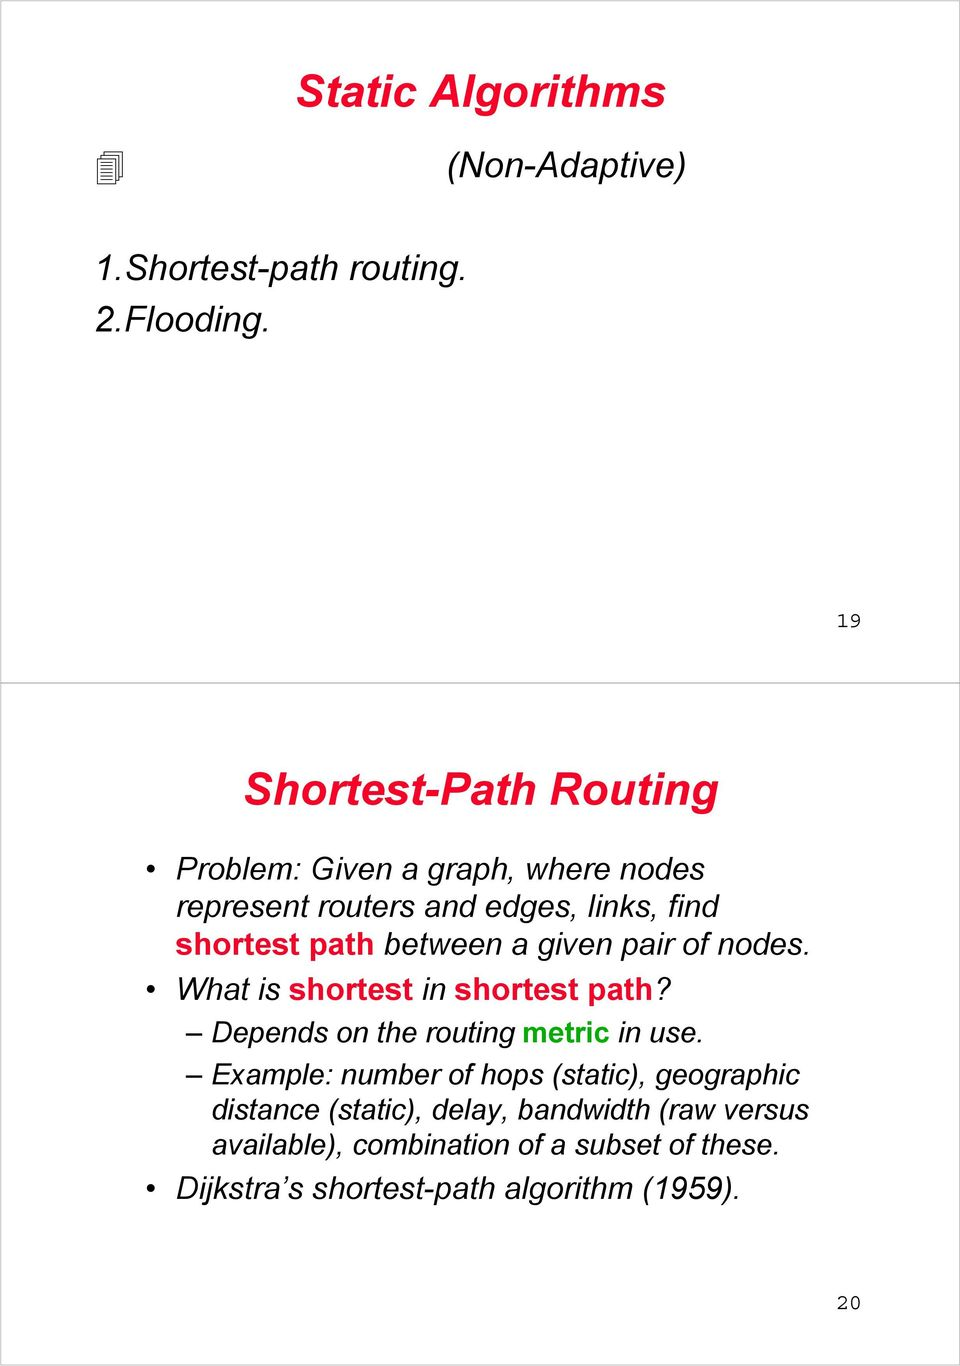 between a given pair of nodes. What is shortest in shortest path? Depends on the routing metric in use.